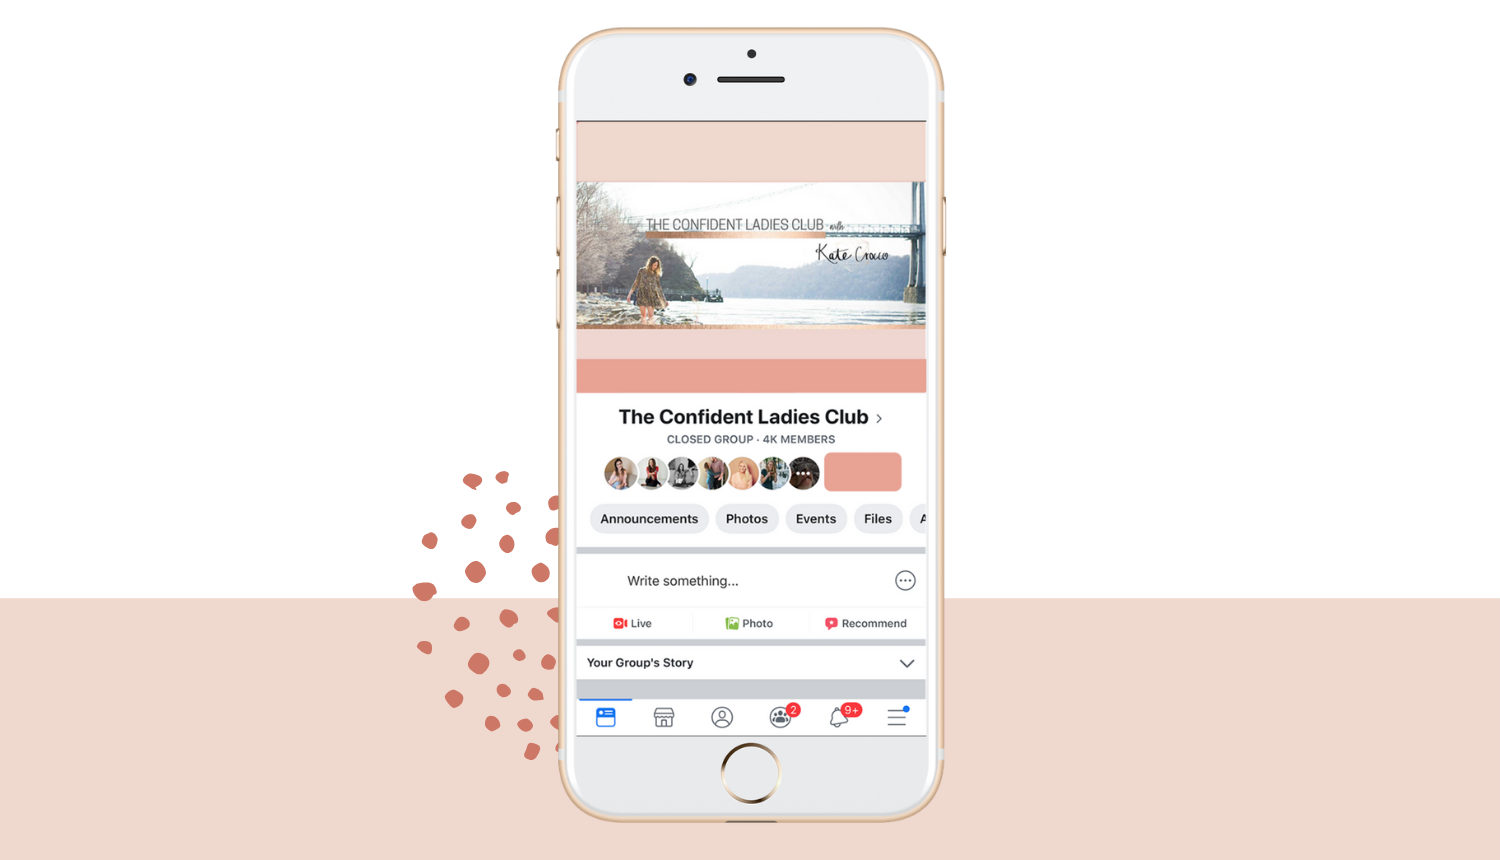 Confident Ladies Club Community - Facebook community to connect with other women in business and share your offerings